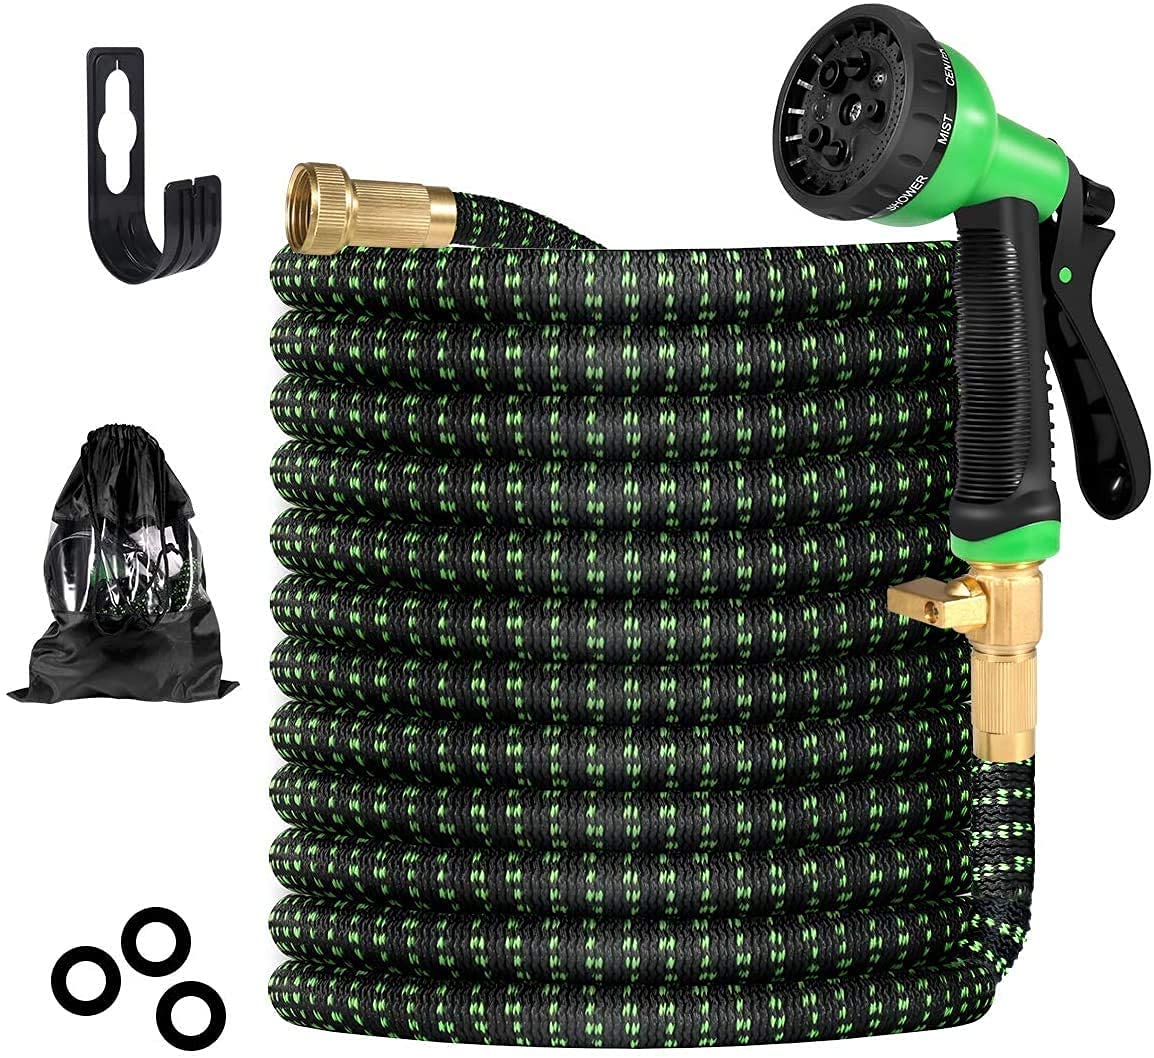 BIIBeSeamu Garden Hose 50FT Flexible Hose with Spray Nozzle Expandable Hose with